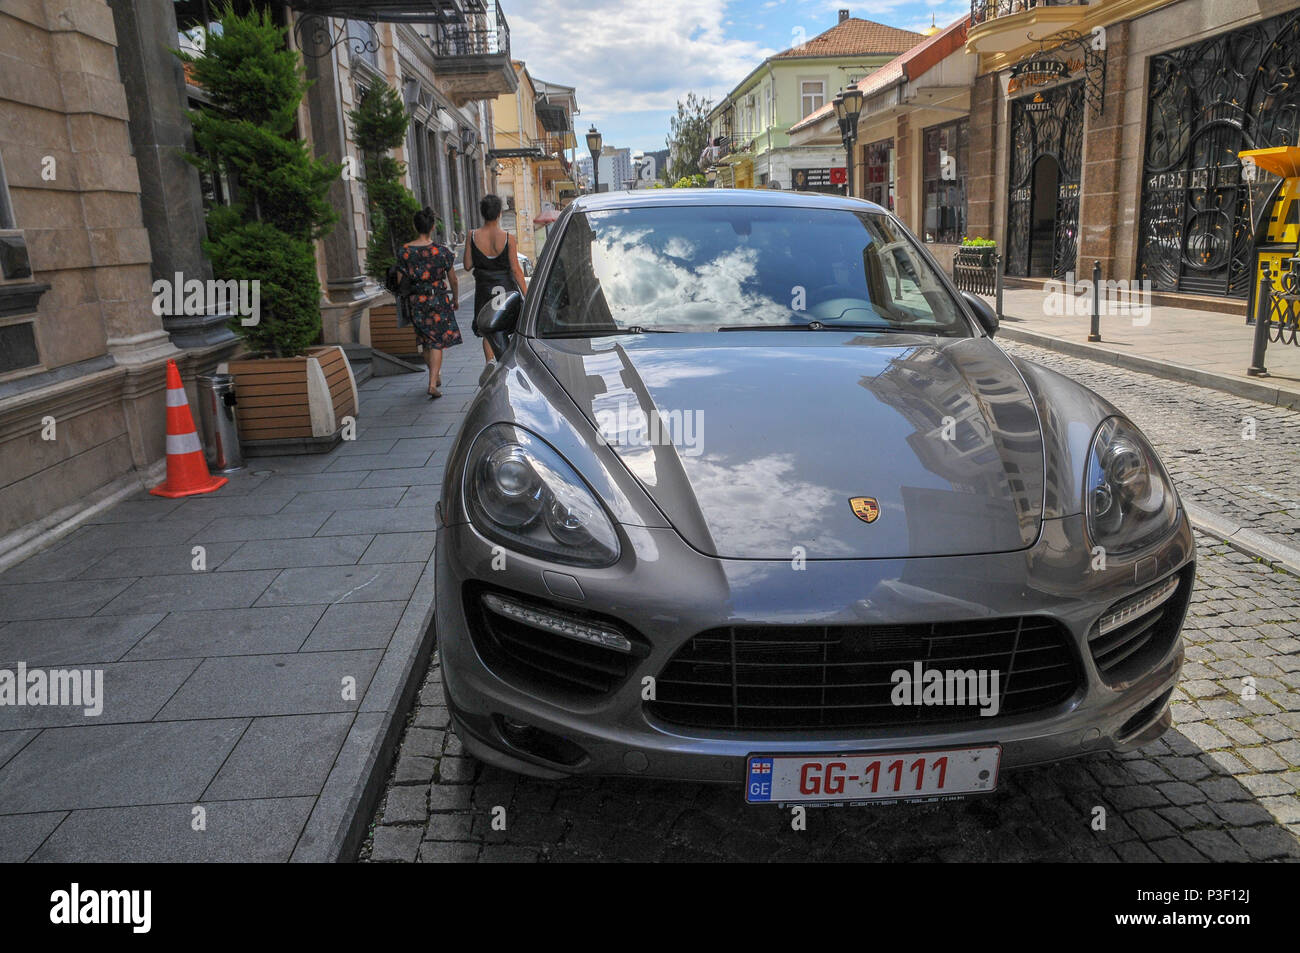 A Porsche parked in the street. Photographed in Batumi, Georgia Stock Photo